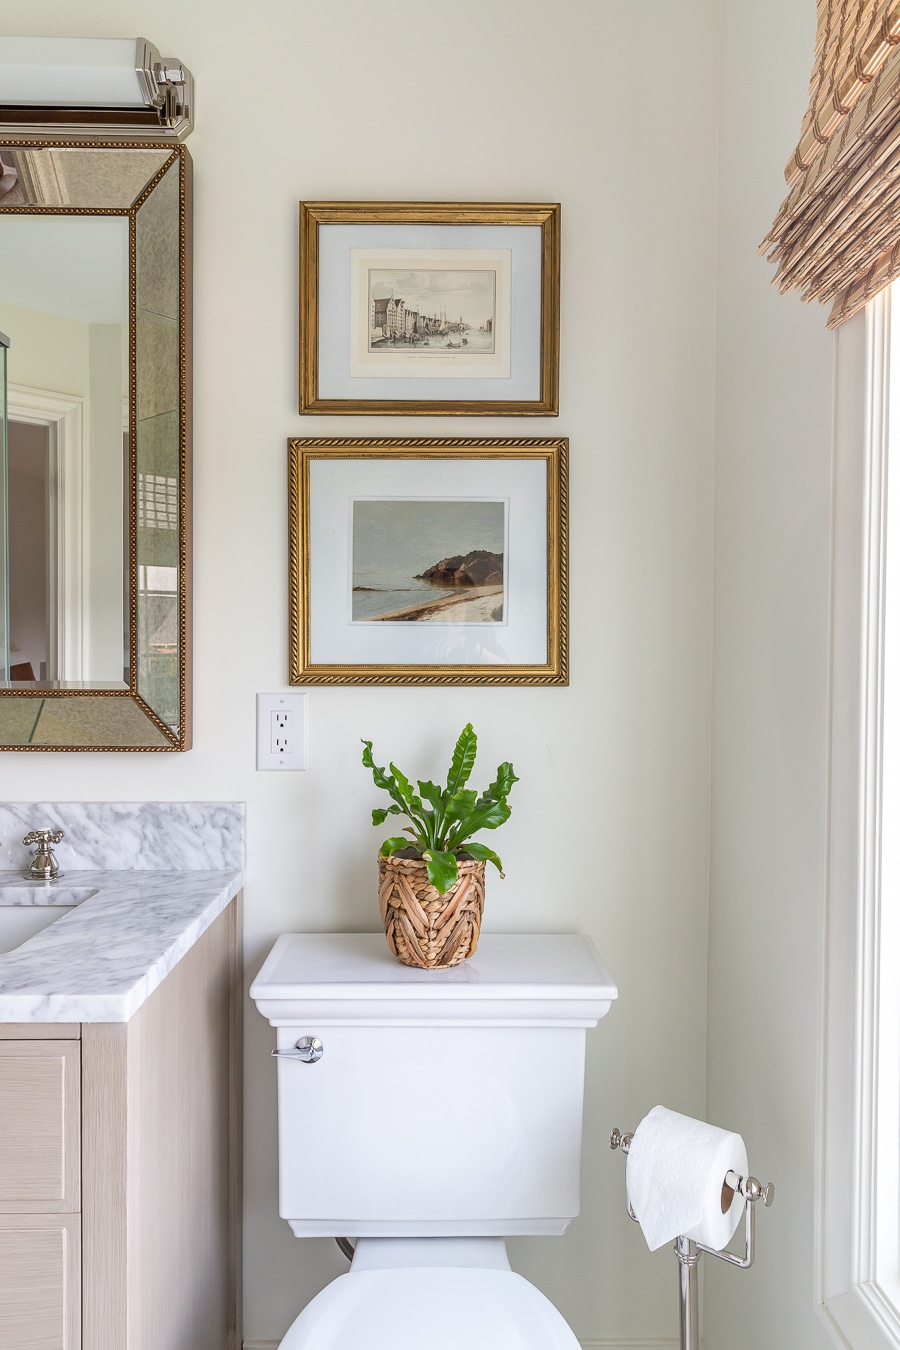 Classic and timeless bathroom design